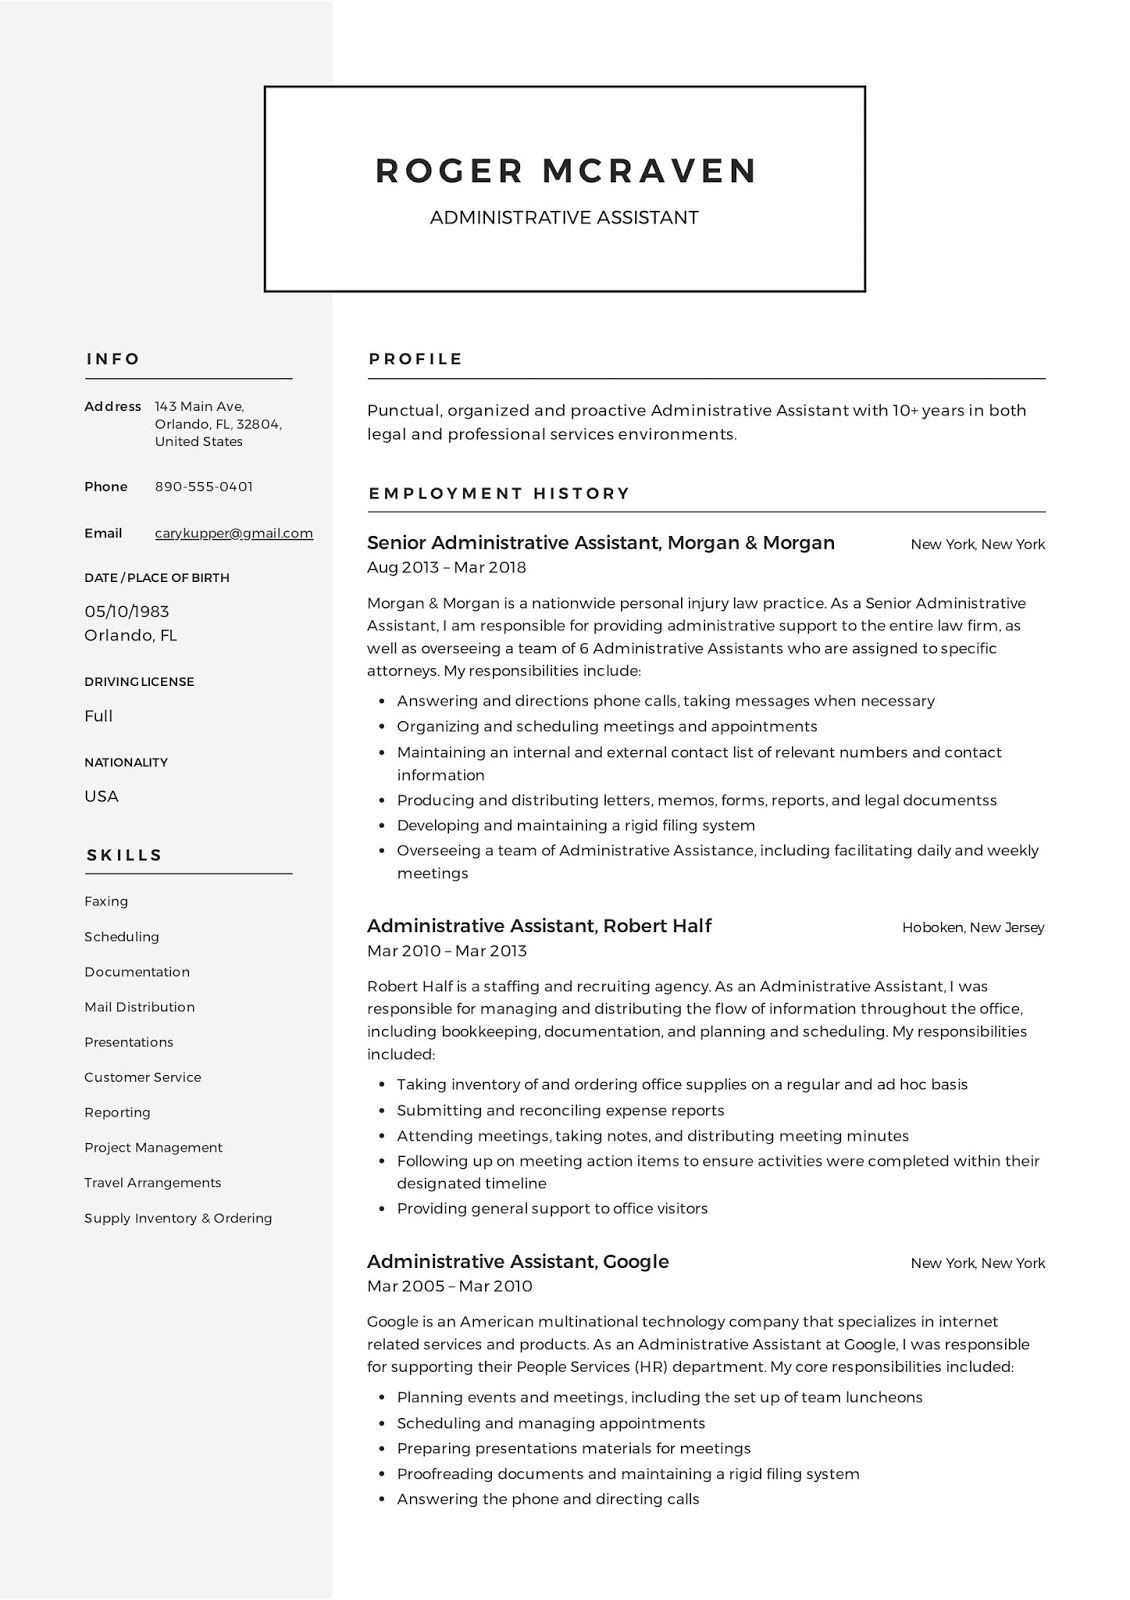 administrative resume template free microsoft word assistant office manager event Resume Administrative Assistant Resume Template Microsoft Word Free